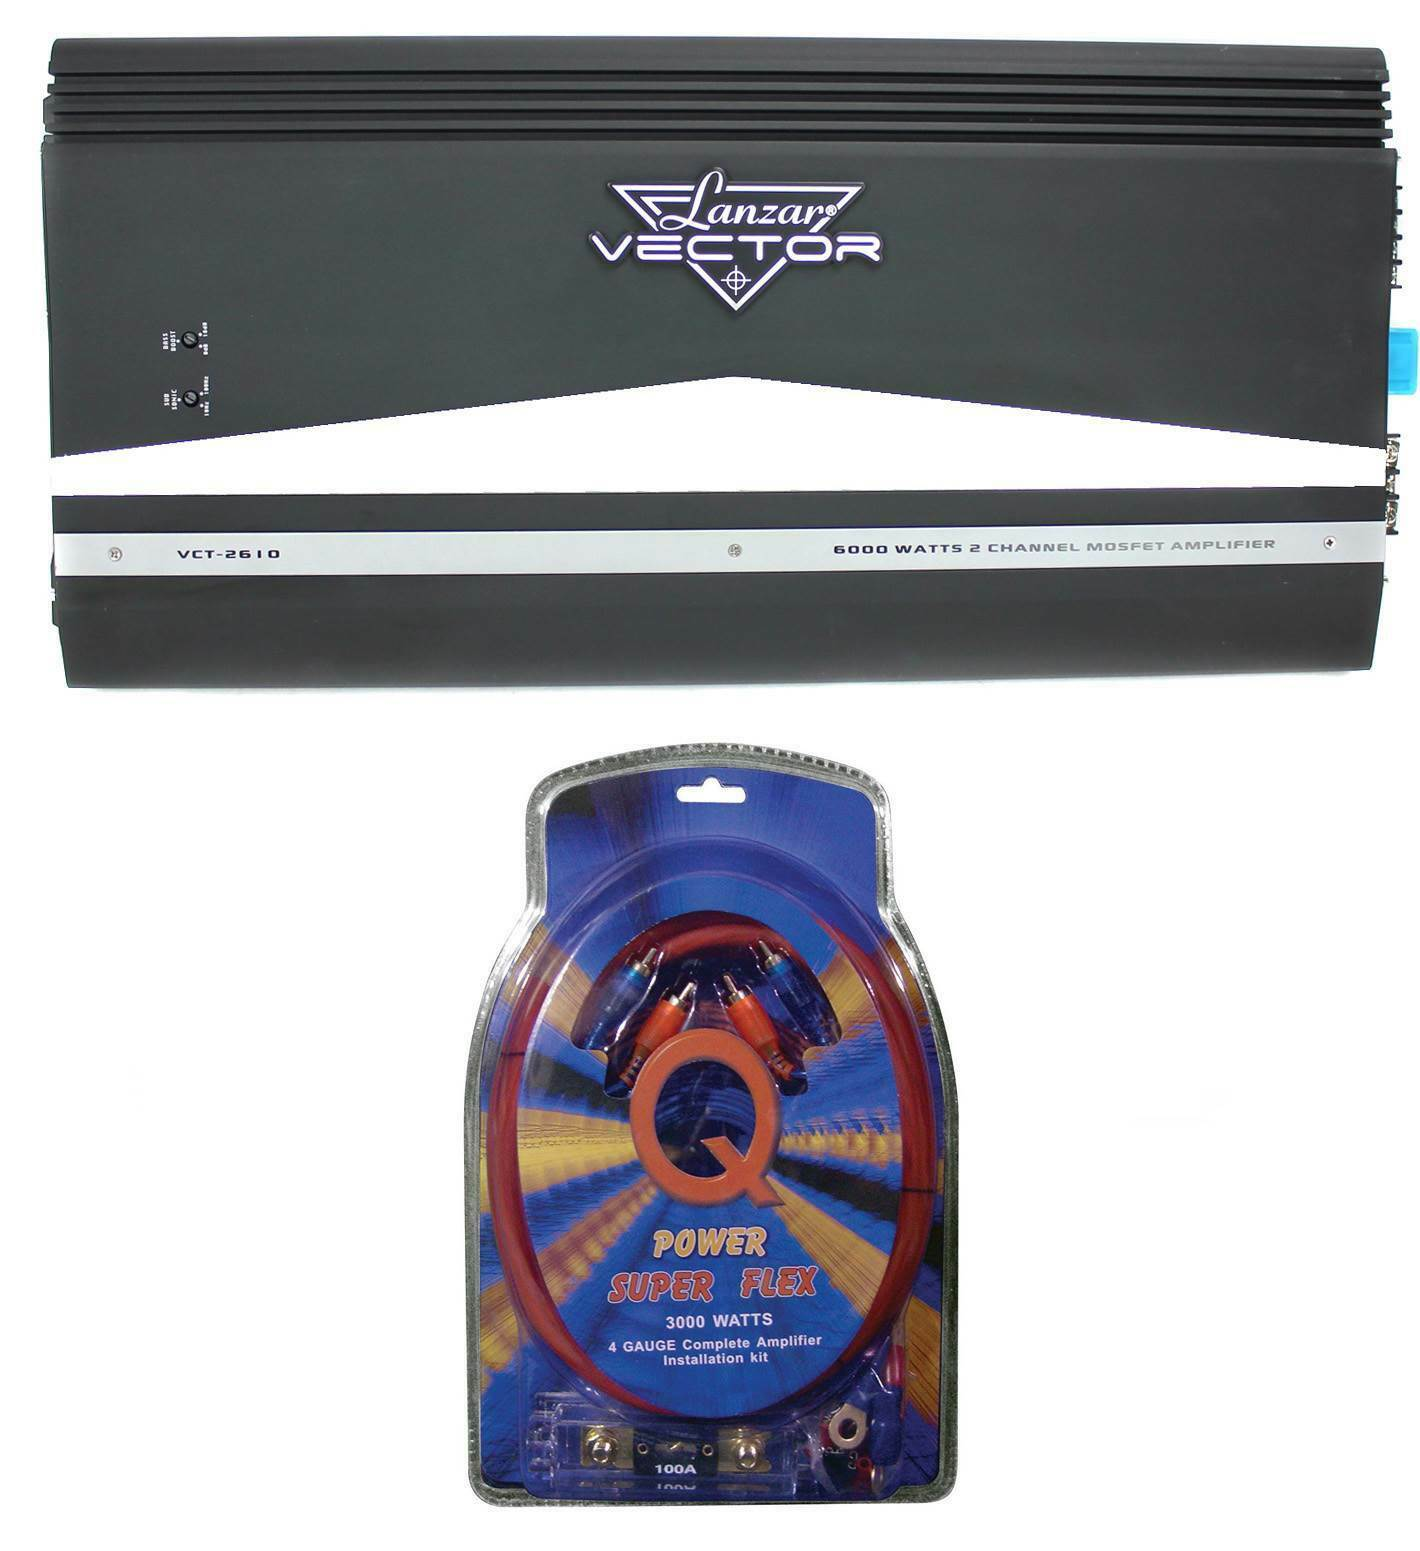 Lanzar Vct2610 6000w 2 Channel Amp Car Power Amplifier 4 Gauge Wiring 1 Of 7only Available